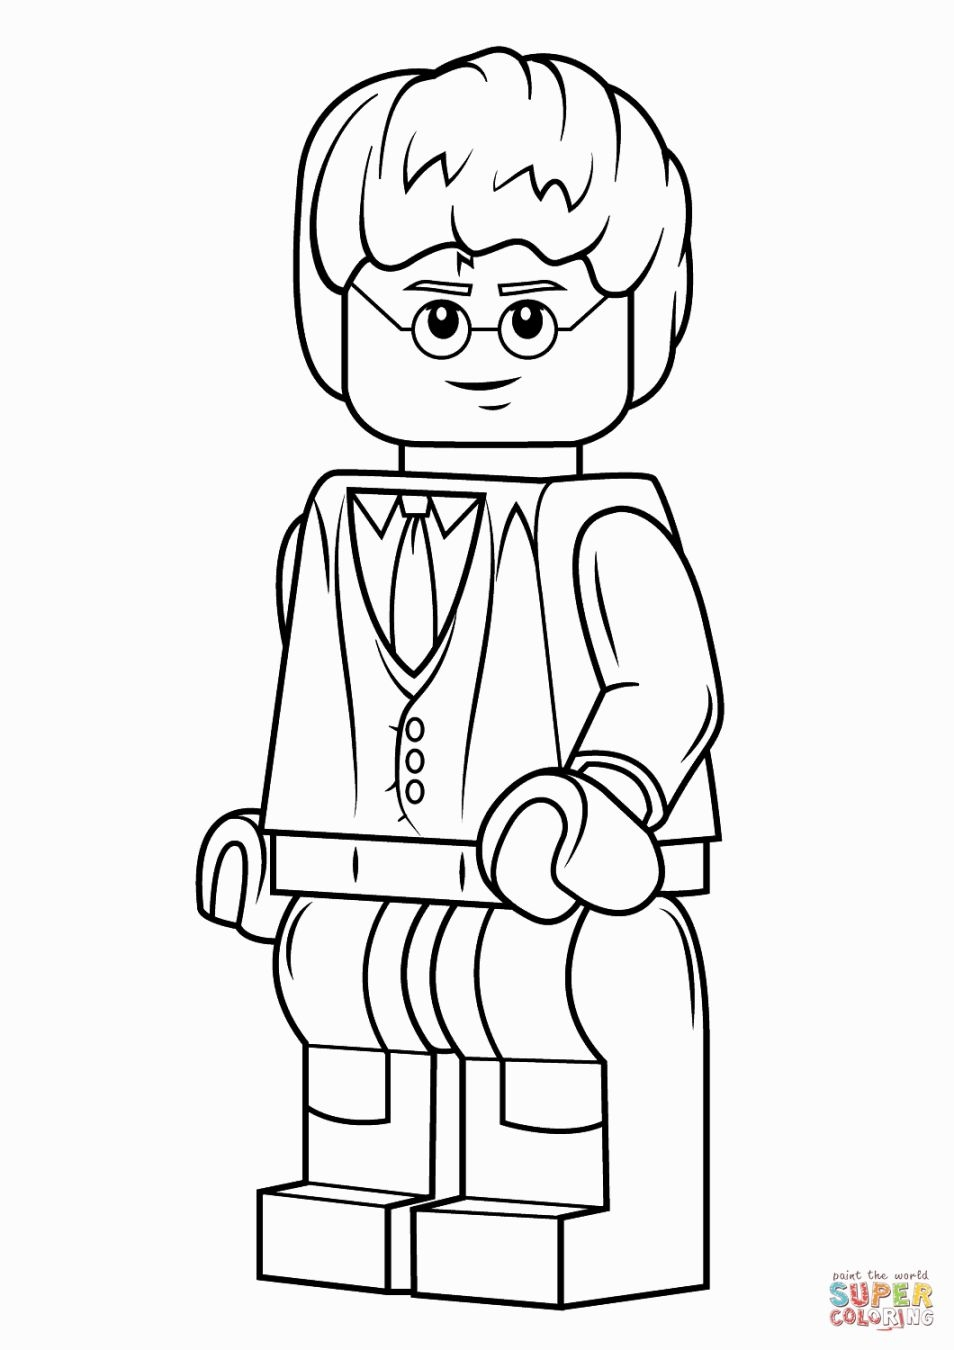 free harry potter coloring pages - lego harry potter coloring pages